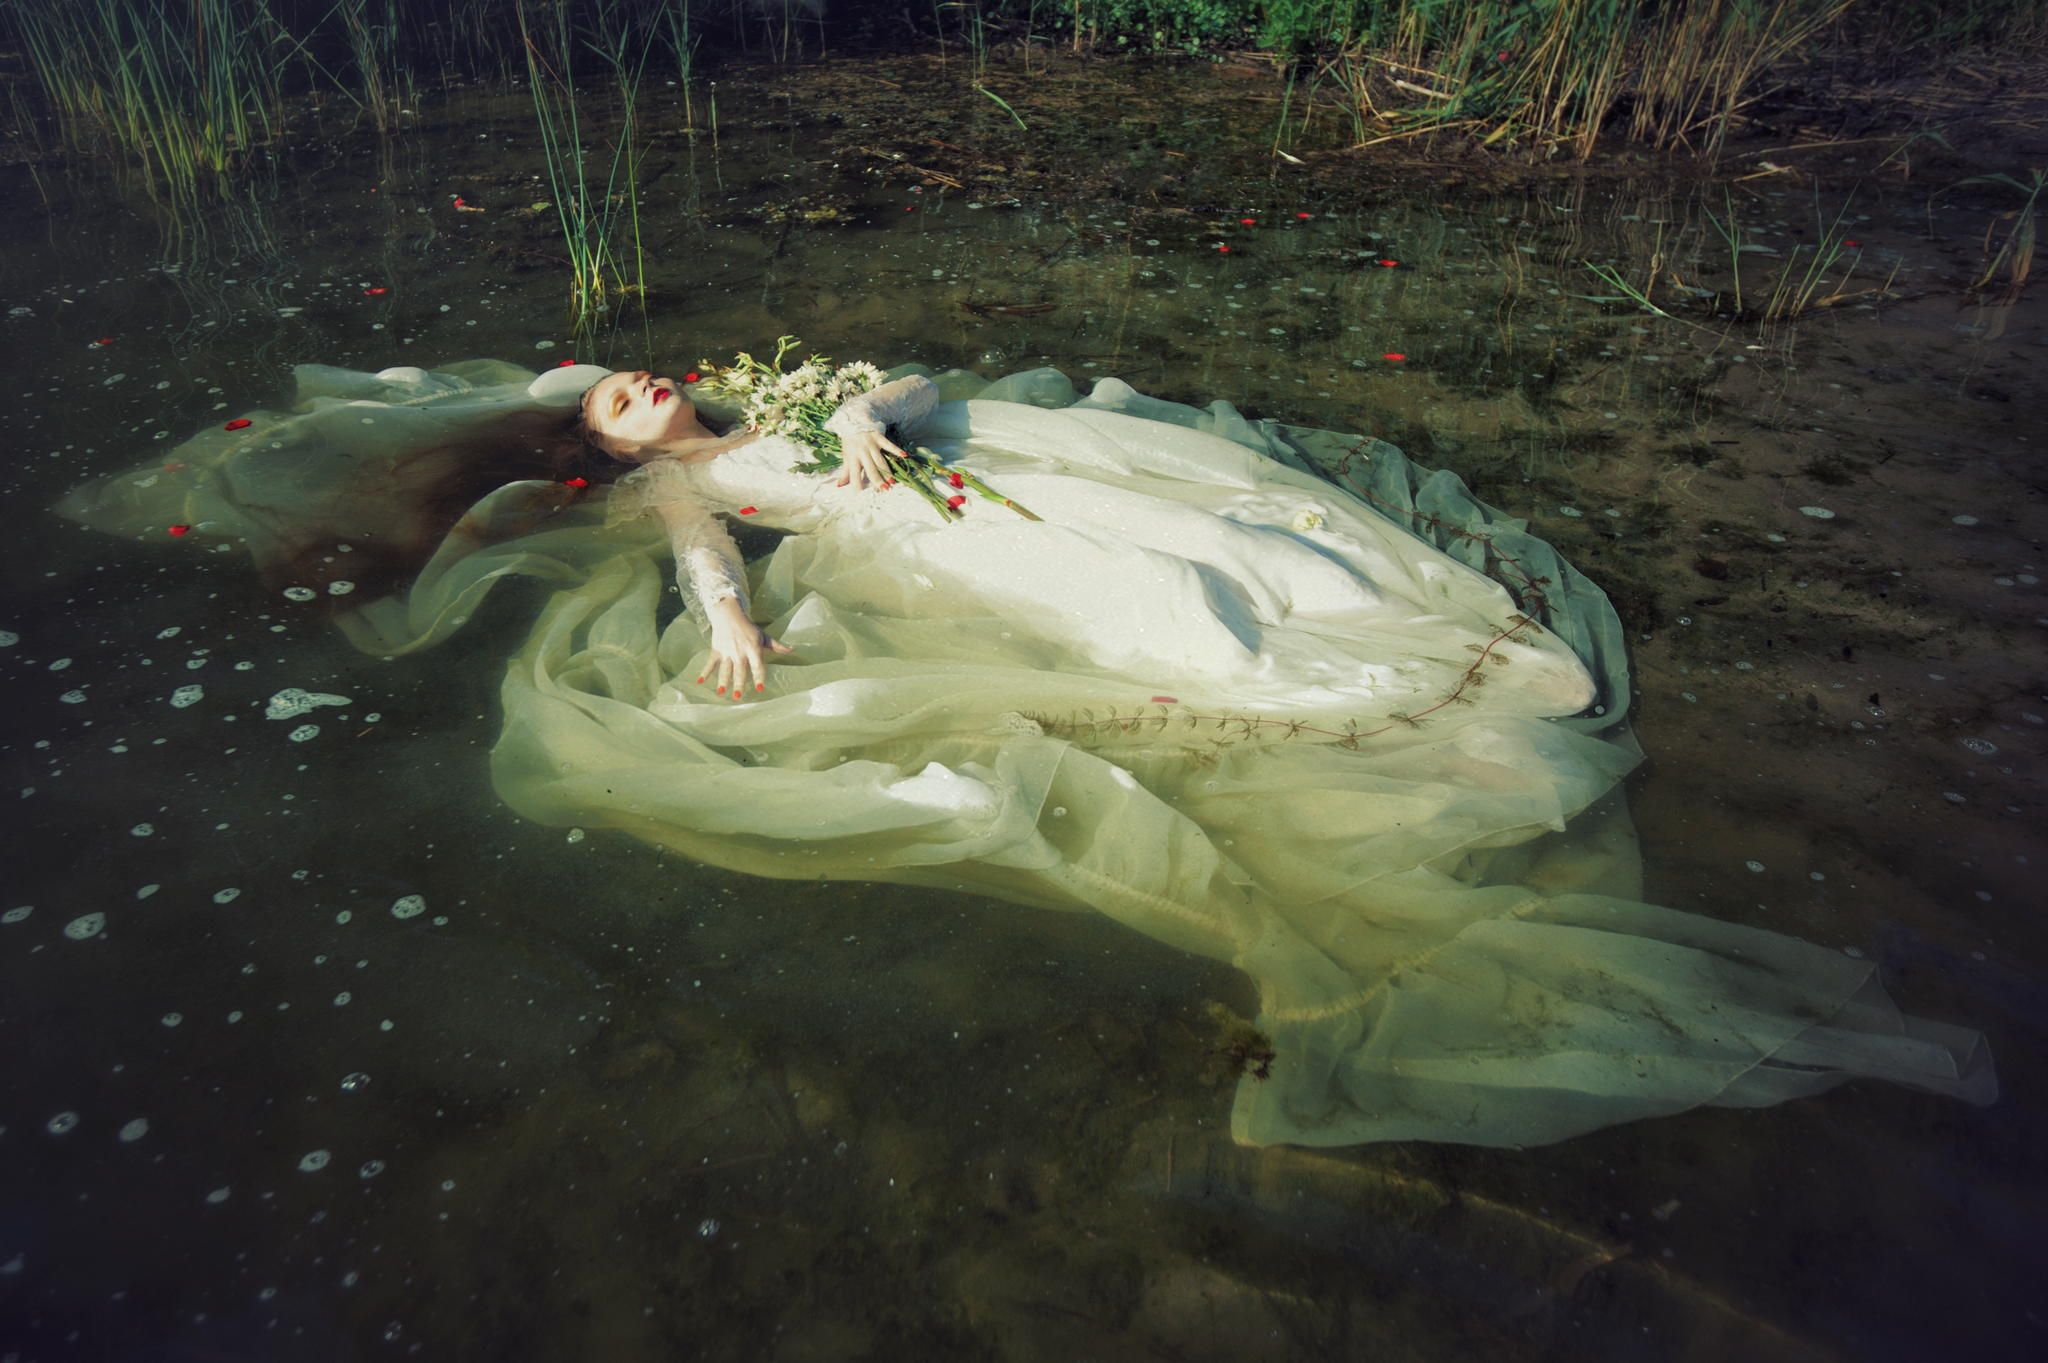 When Down Her Weedy Trophies And Herself Fell In The Weeping Brook Fantasia T Shirt Pria Castlevania Death Clothes Spread Wide Mermaid Like Awhile They Bore Up Which Time She